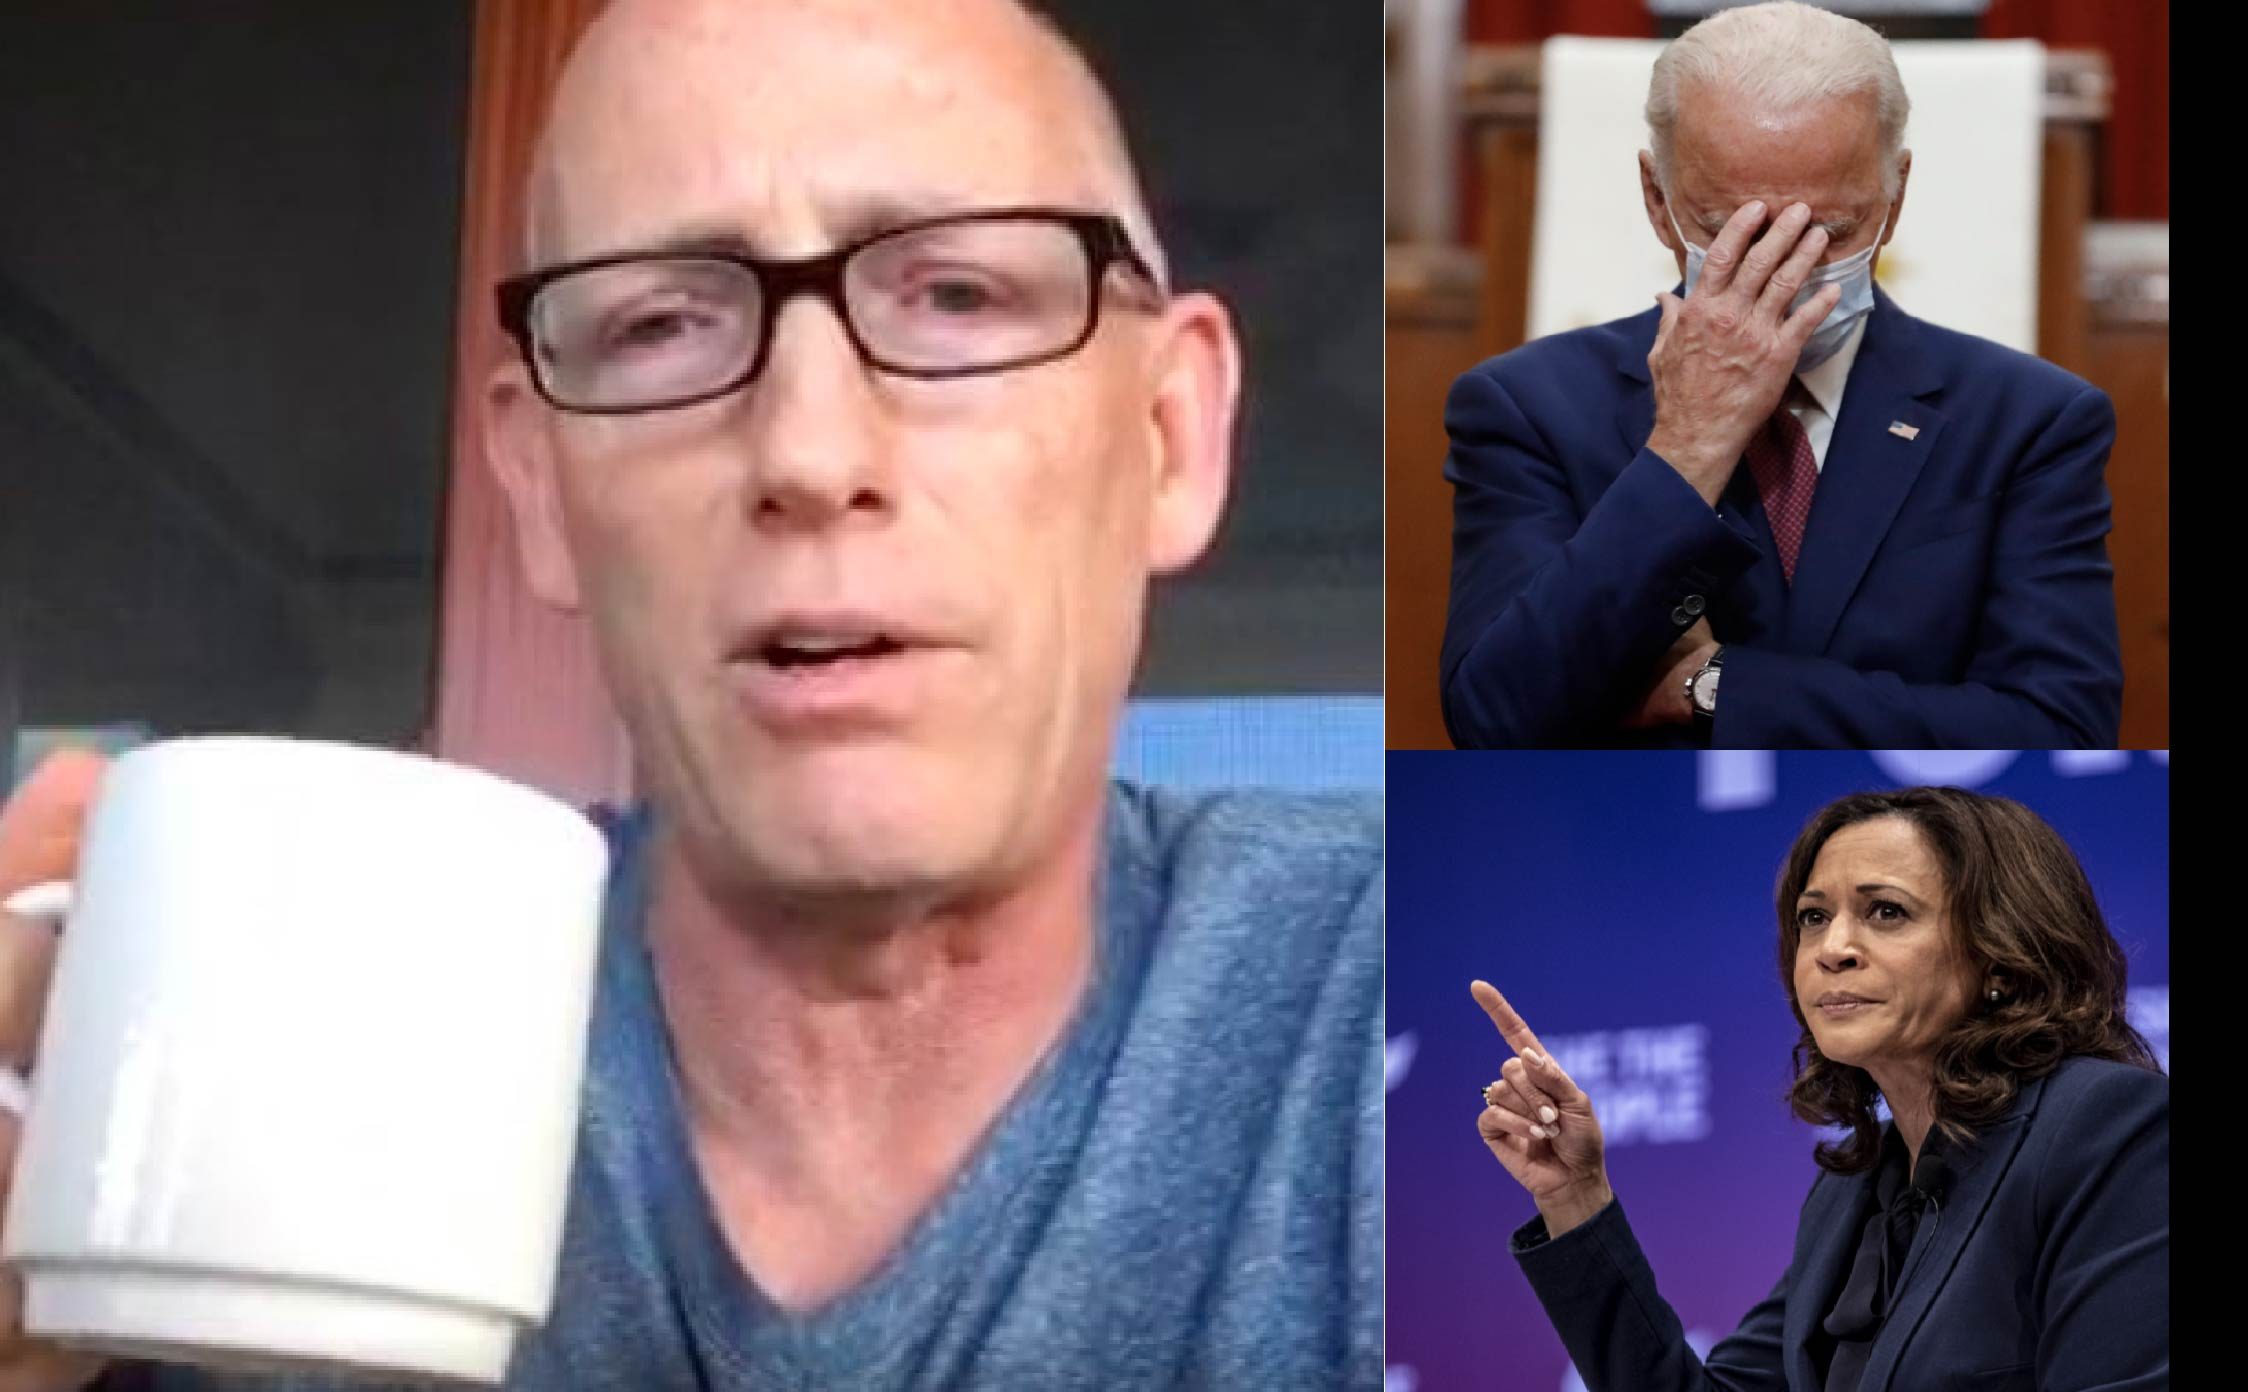 Trump Supporter Scott Adams Just Explained in One short Tweet Why Trump's a Shoo-In For 2024